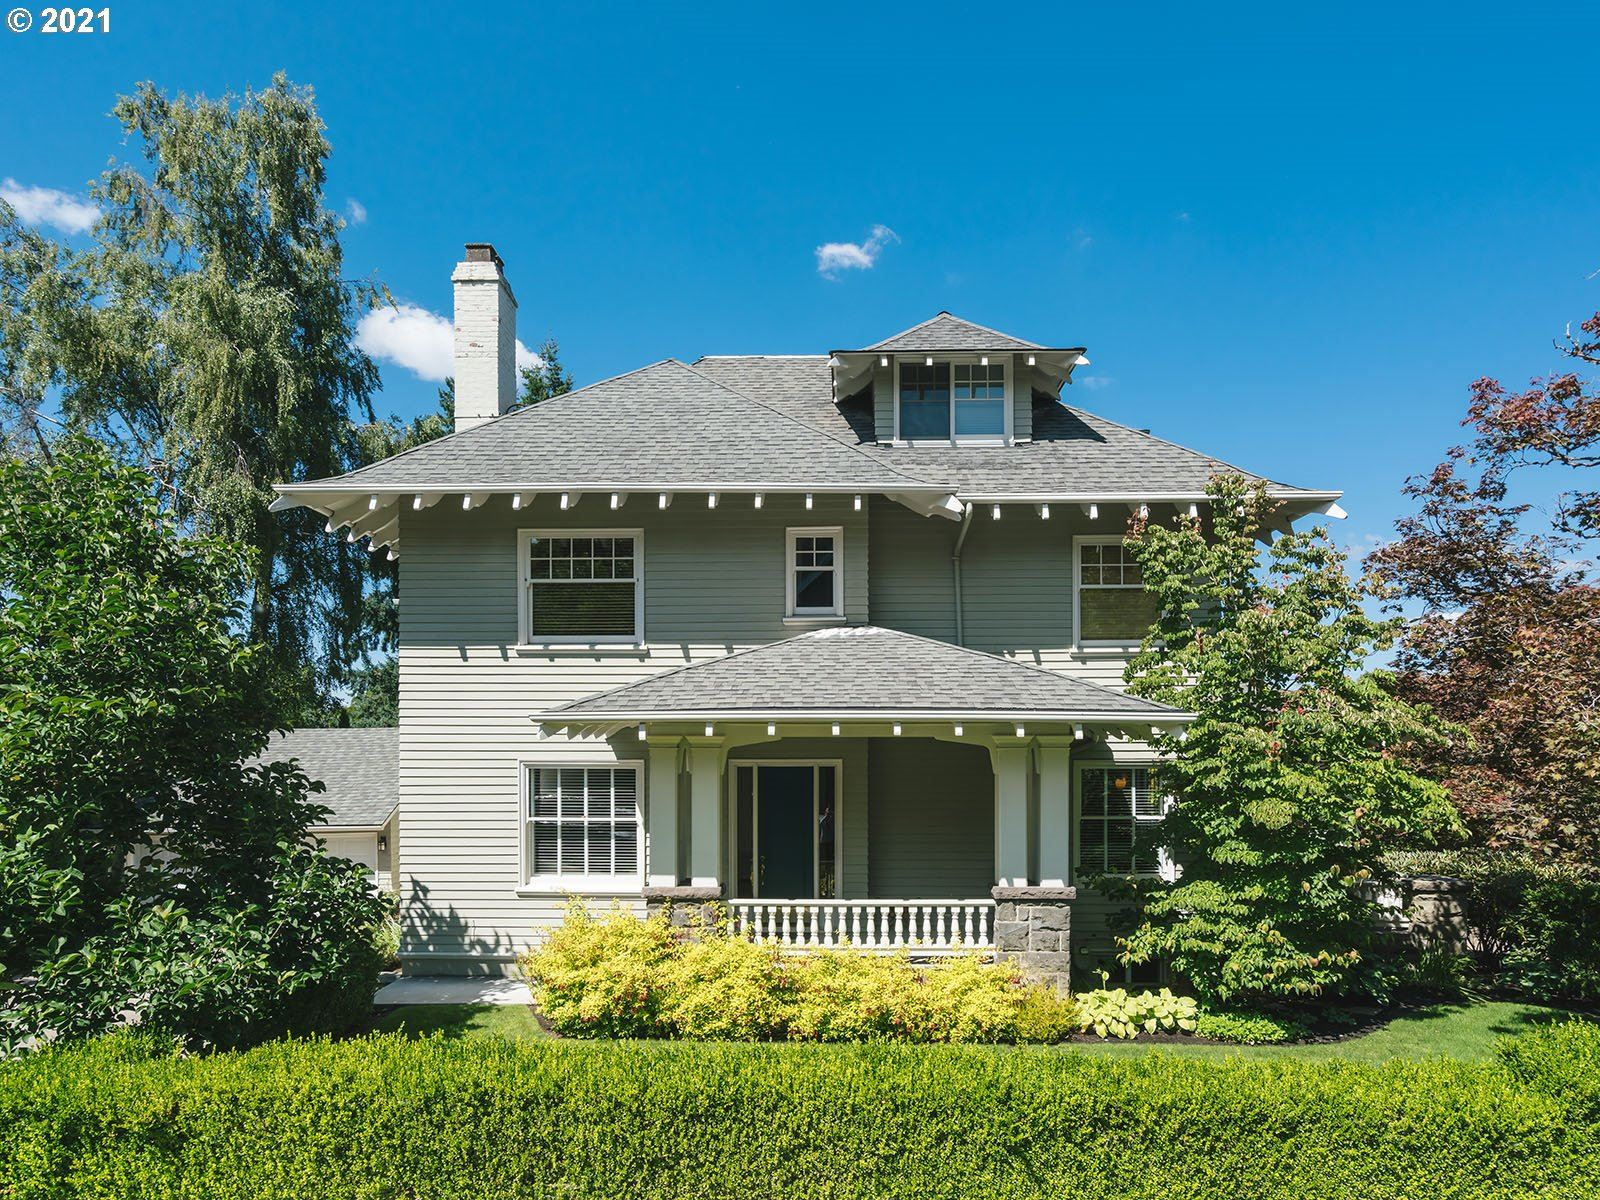 2233 SW 18TH AVE, Portland, OR 97201 - MLS#: 21485930